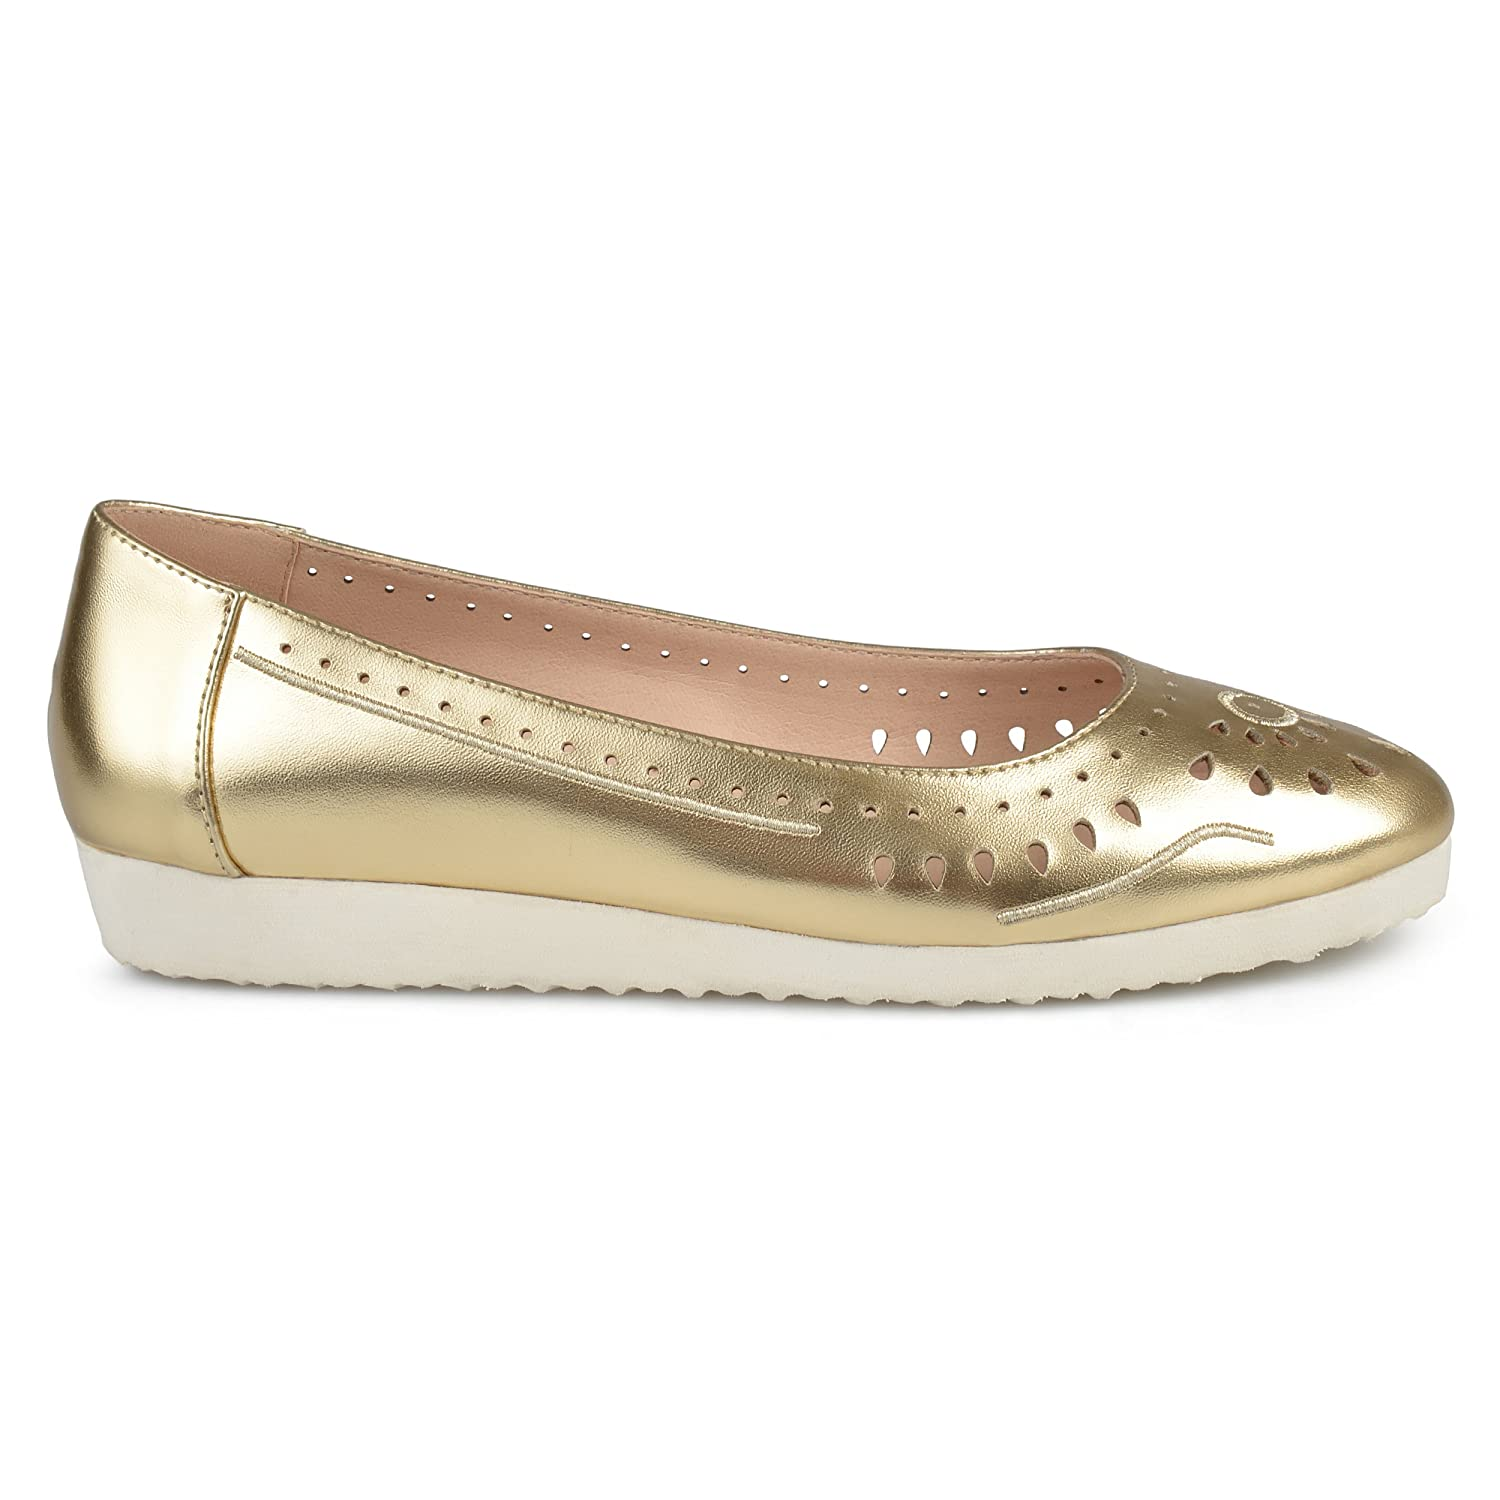 04fbc6046b6e5 Brinley Co. Womens Cyra Faux Leather Laser-Cut Comfort-Sole Embroidered  Lightweight Flats